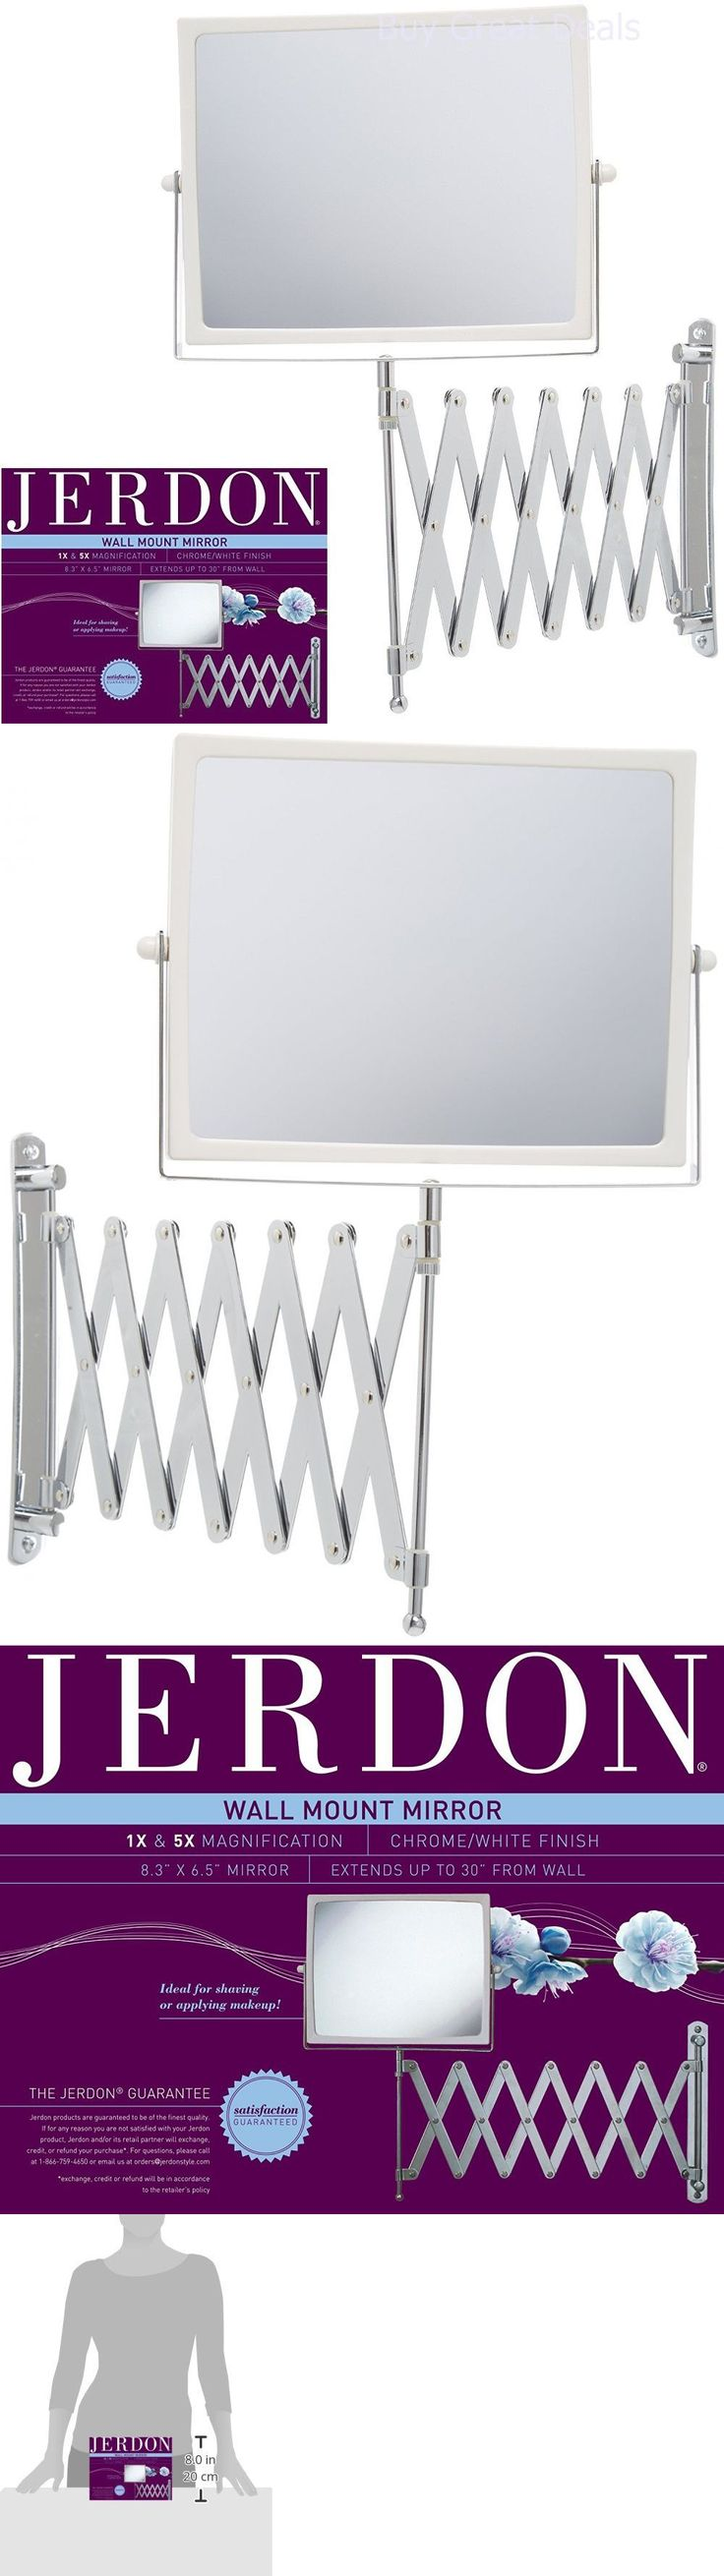 Makeup Mirrors: Extendable 2 Sided Makeup Mirror Wall Arm Shaving Swivel Magnifying Bathroom New BUY IT NOW ONLY: $32.38